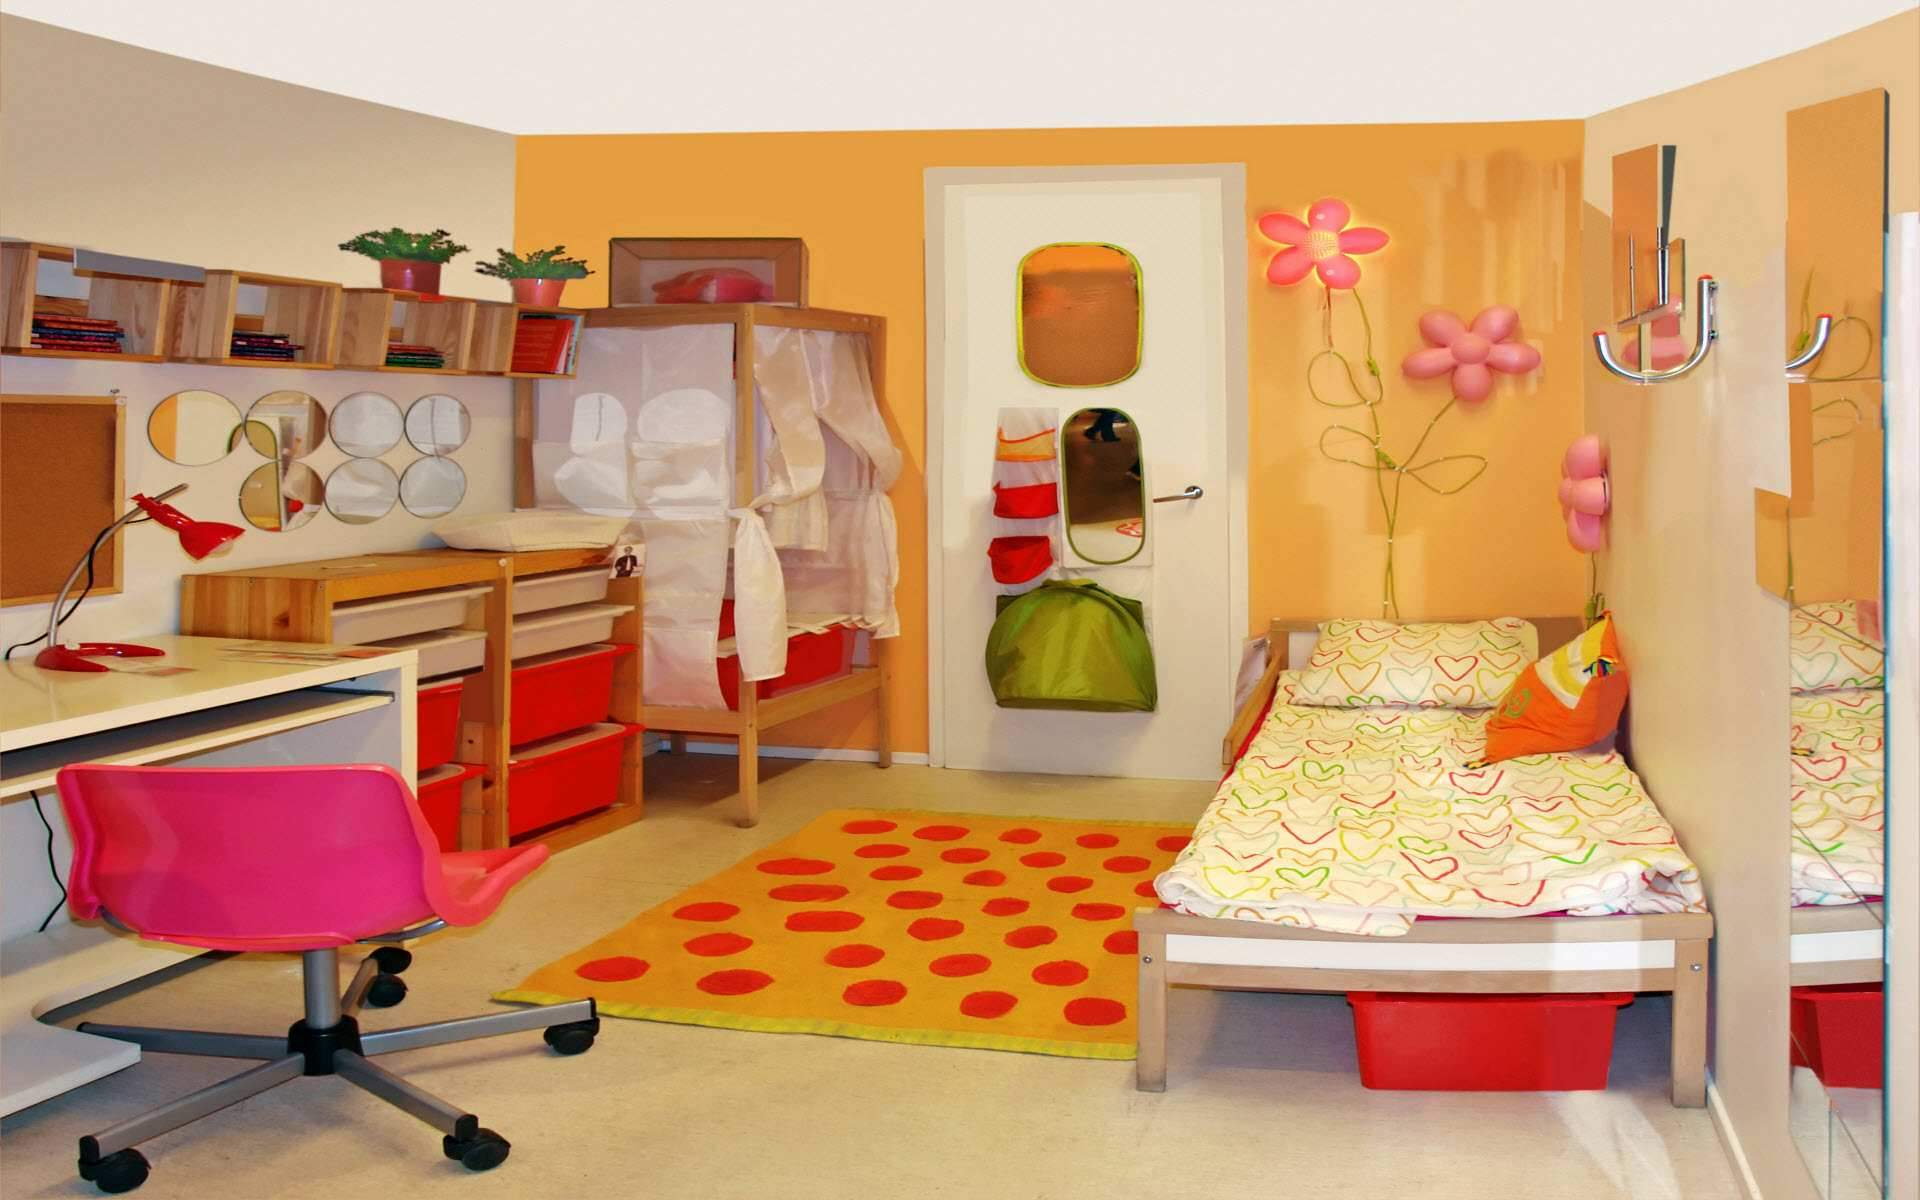 Kids room decorating ideas design ideas for kids rooms space saving long hairstyles - Kids room decoration ...